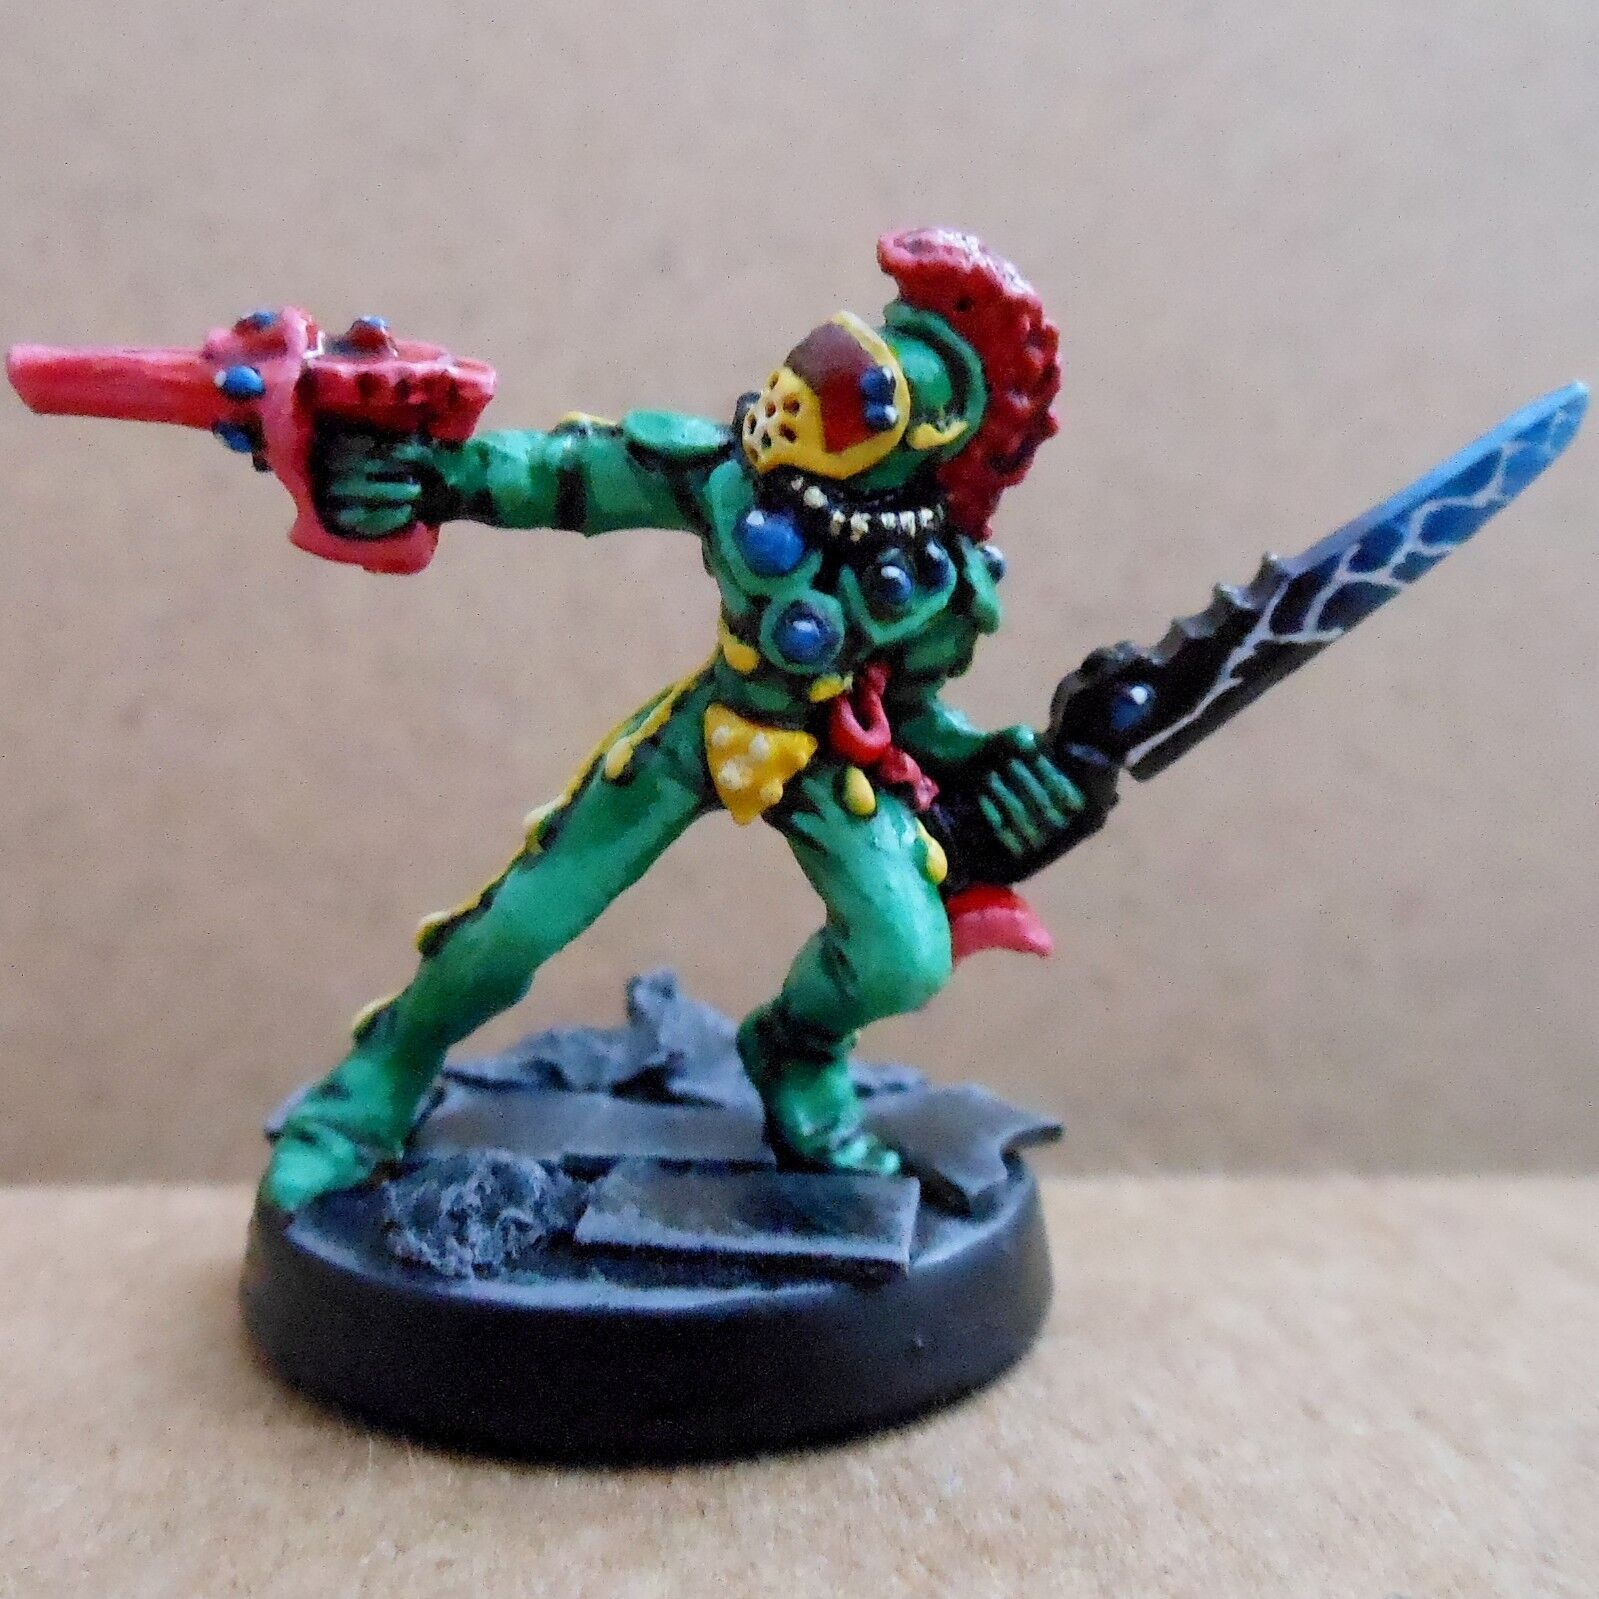 1988 Harlequin Troupers Rogue Trader Pro Painted Eldar Harlequins Warhammer Warhammer Warhammer 40K 0a7616